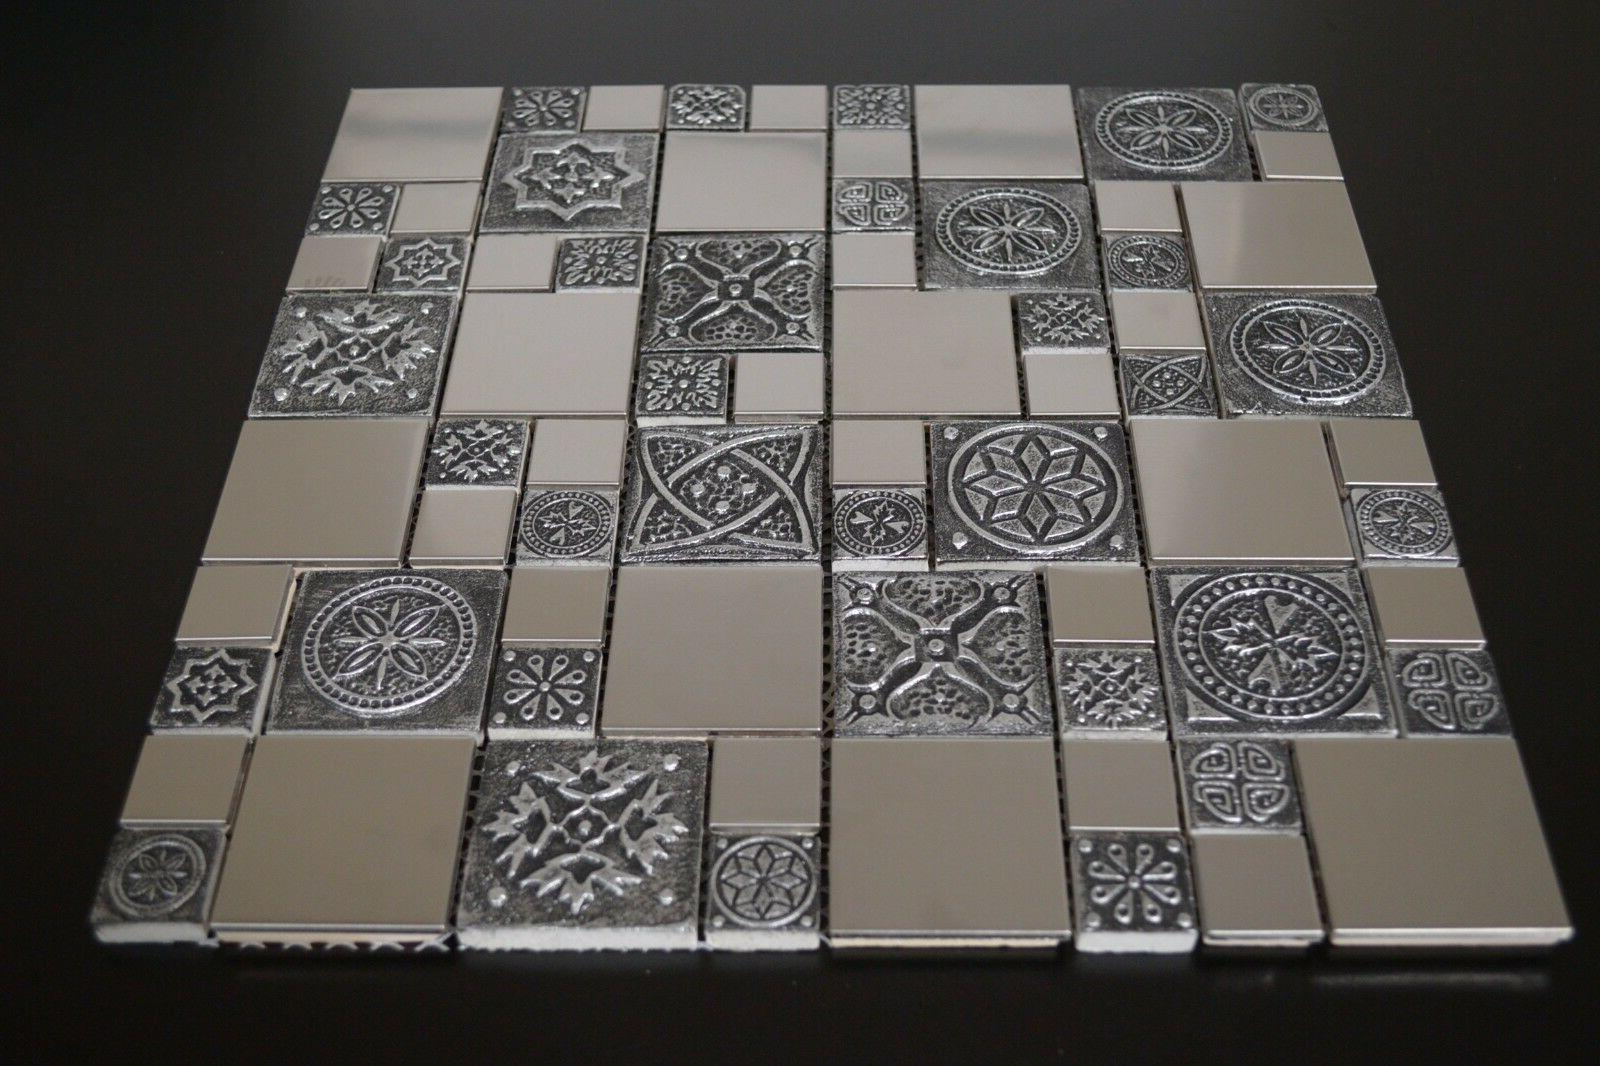 Stainless Steel Metal Mosaic Tile Fireplace & Wall Decor